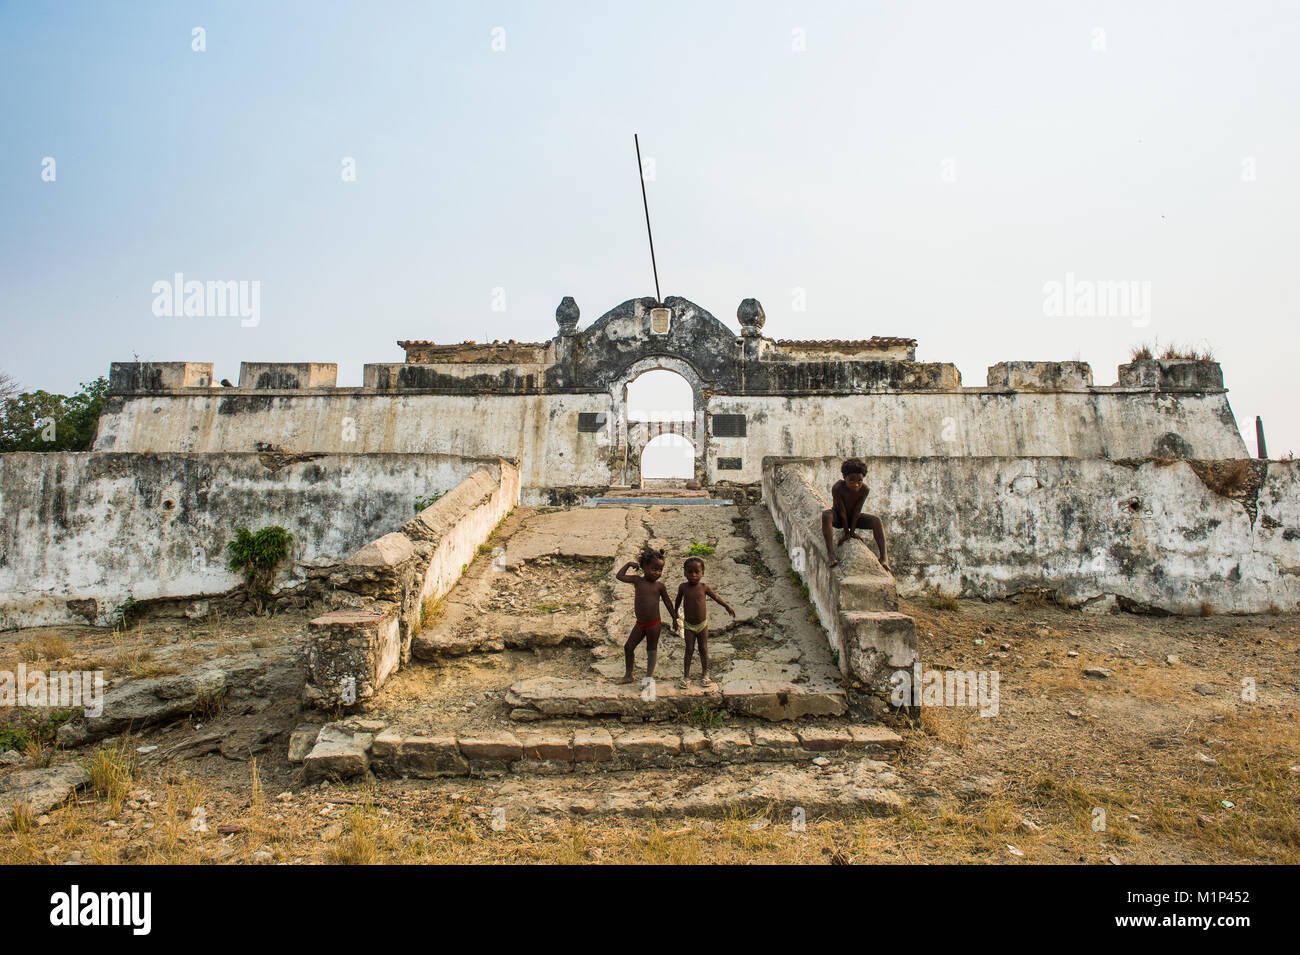 The fortress of Massangano, Cuanza Norte, Angola, Africa - Stock Image